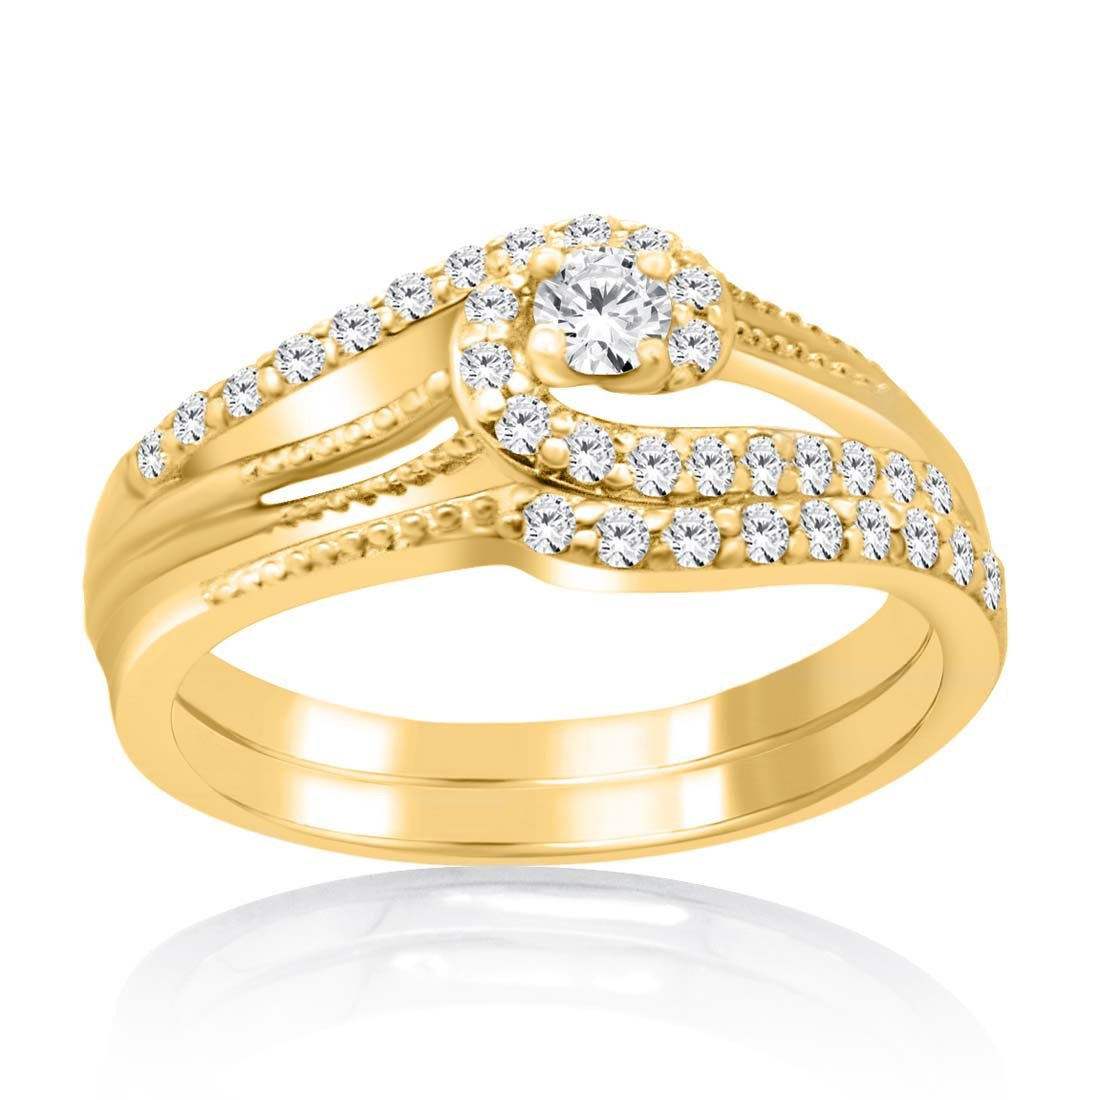 db51314ce37 Amazon.com: Women's Jewelry Forever 14K Yellow Gold Plated Alloy ...